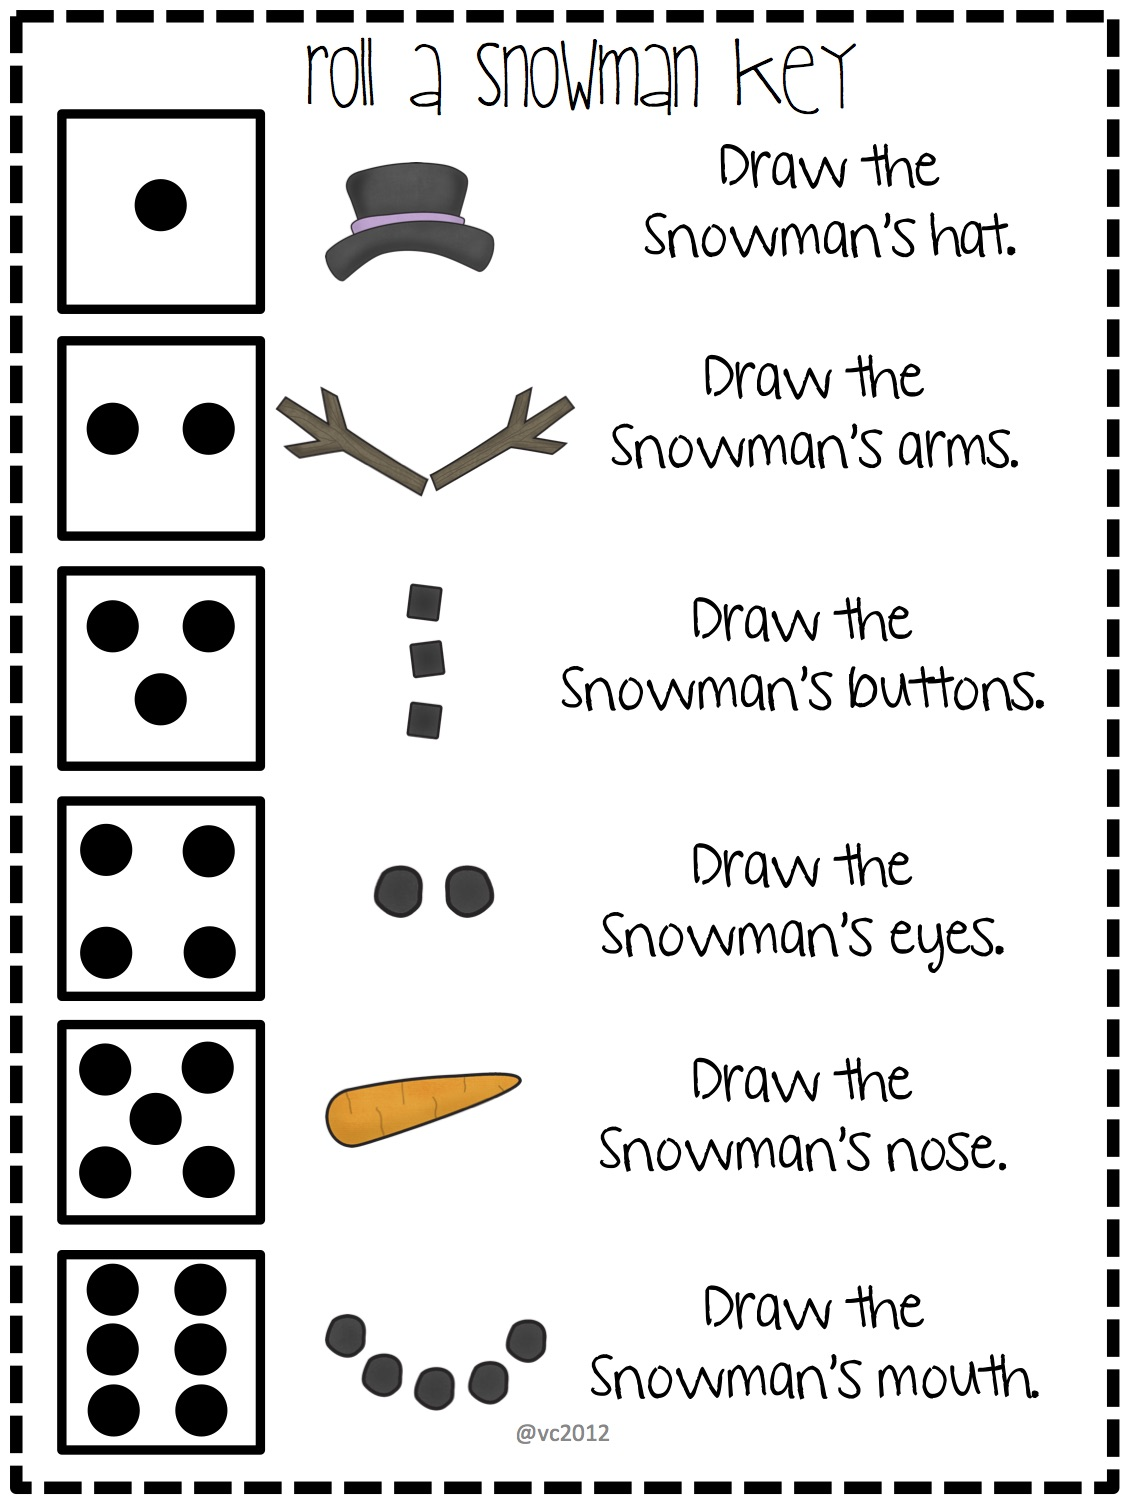 Camille's Primary Ideas: Roll-A-Snowman Review